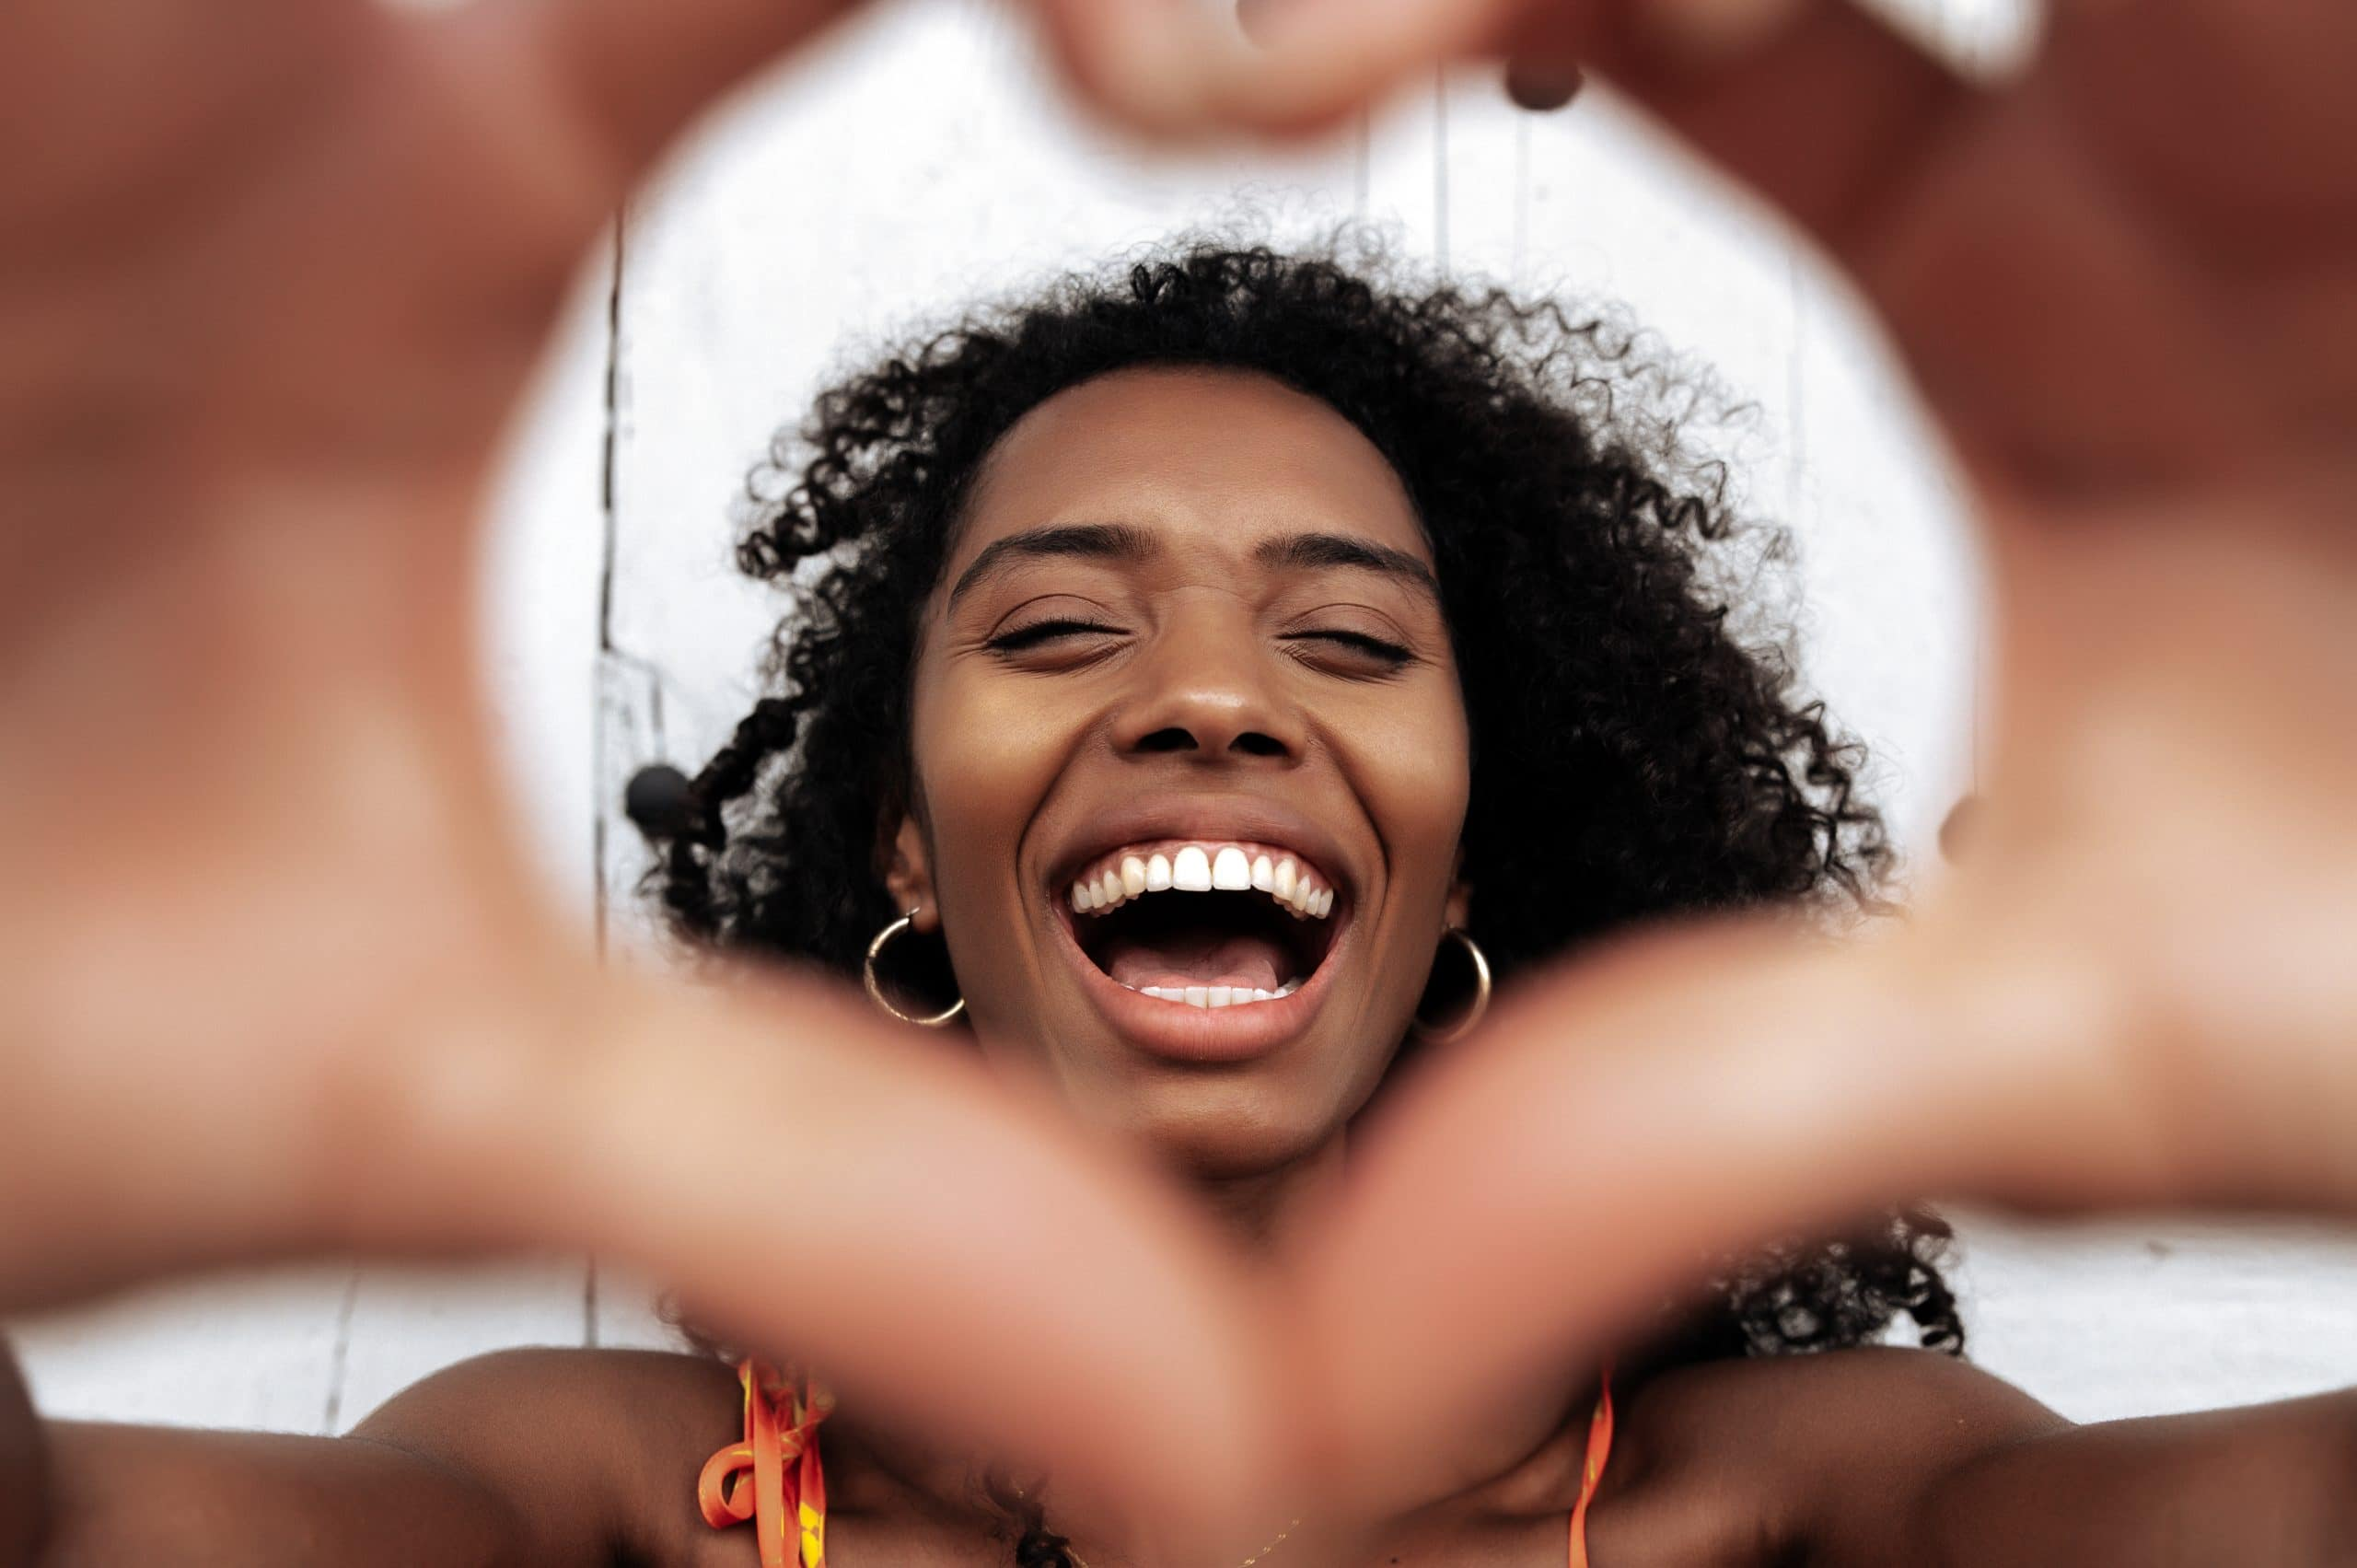 Optimistic young African American female laughing happily and showing heart shaped sign while standing against old wall